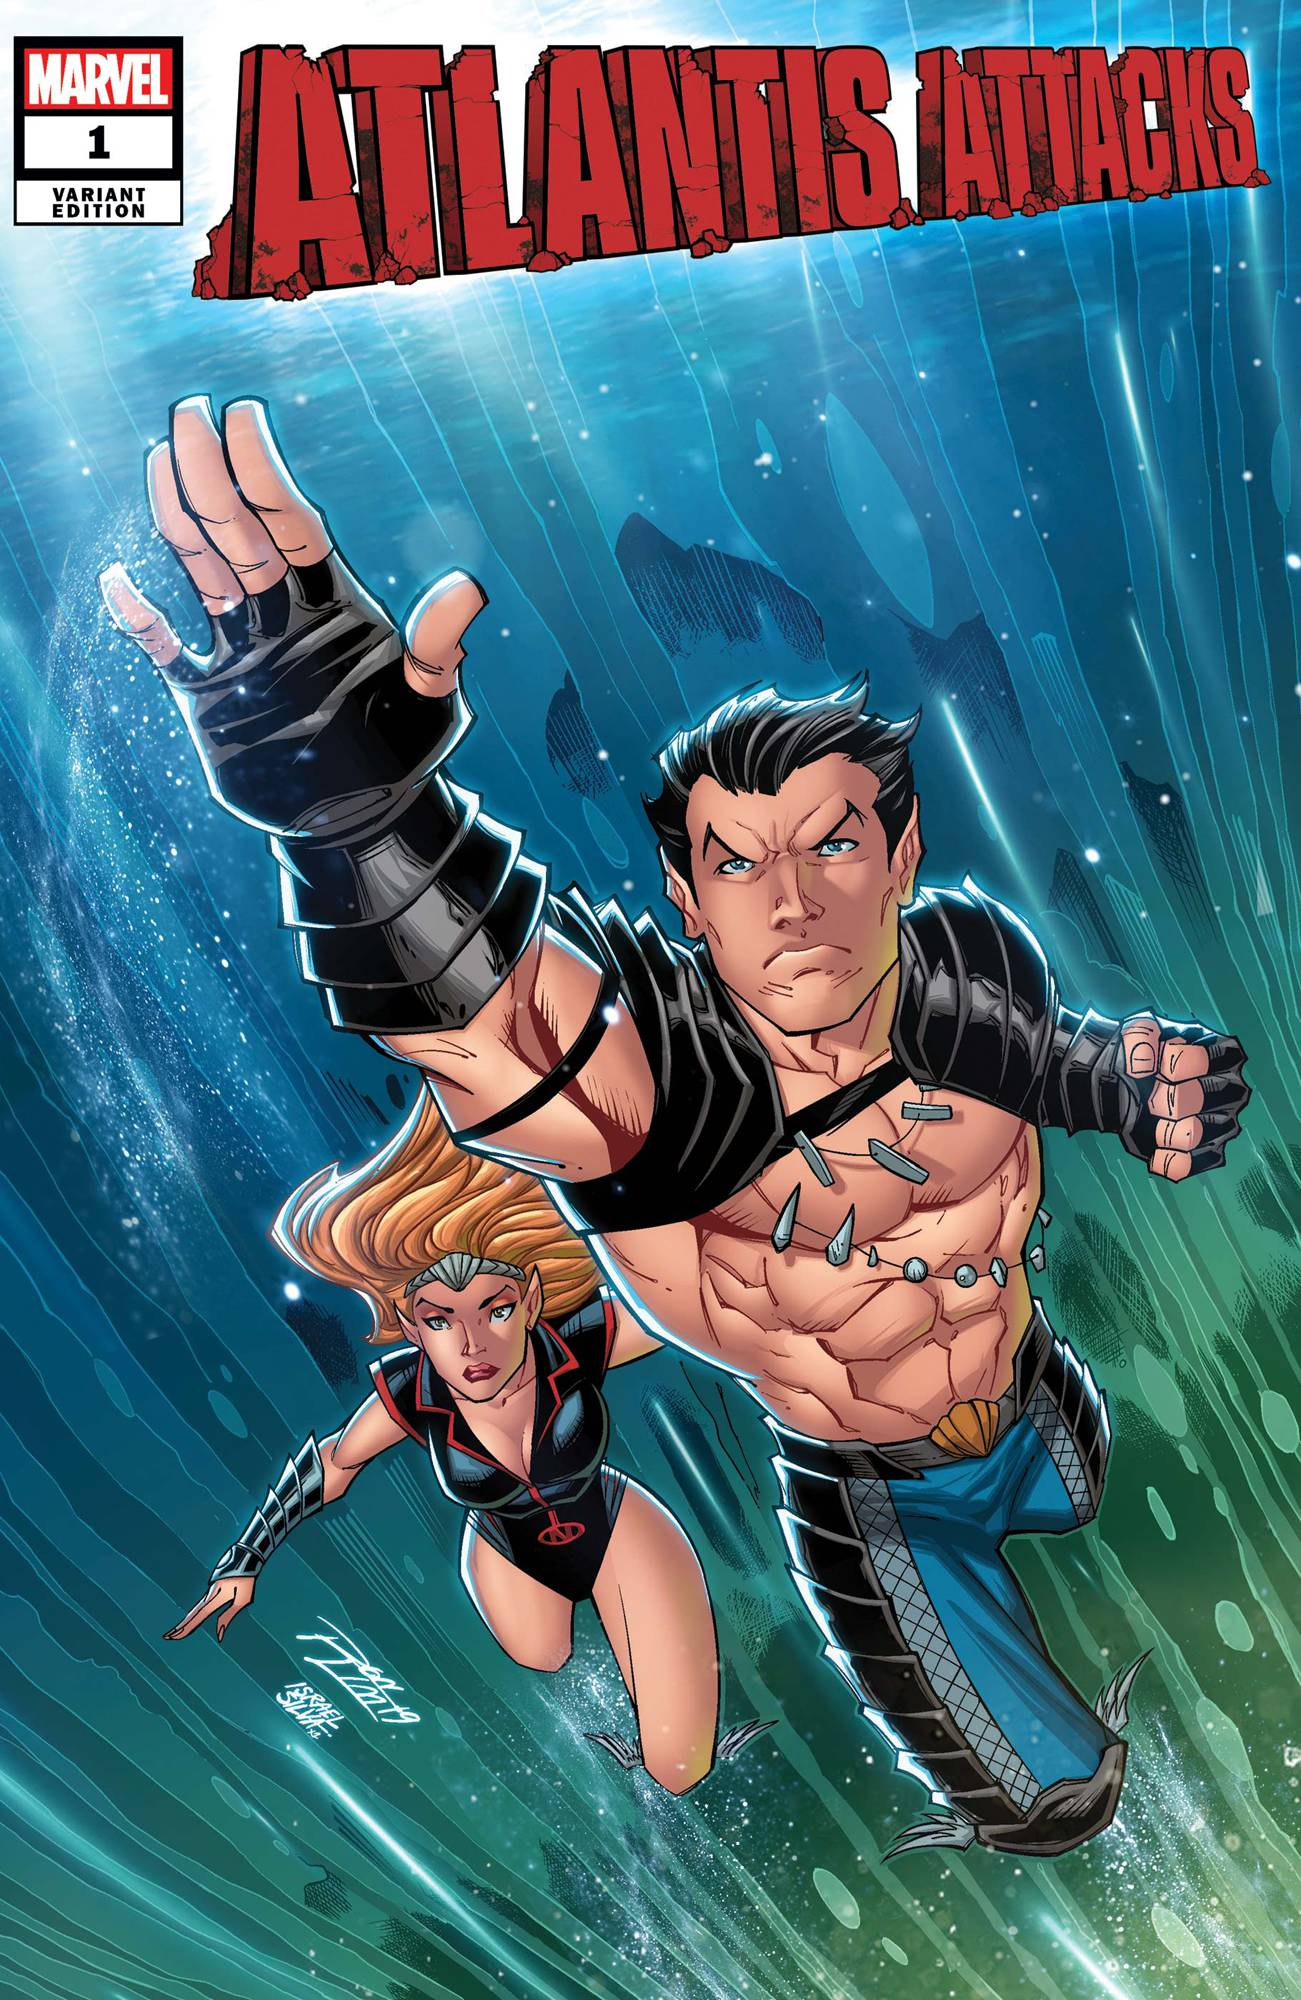 ATLANTIS ATTACKS #1 (OF 5) RON LIM VAR